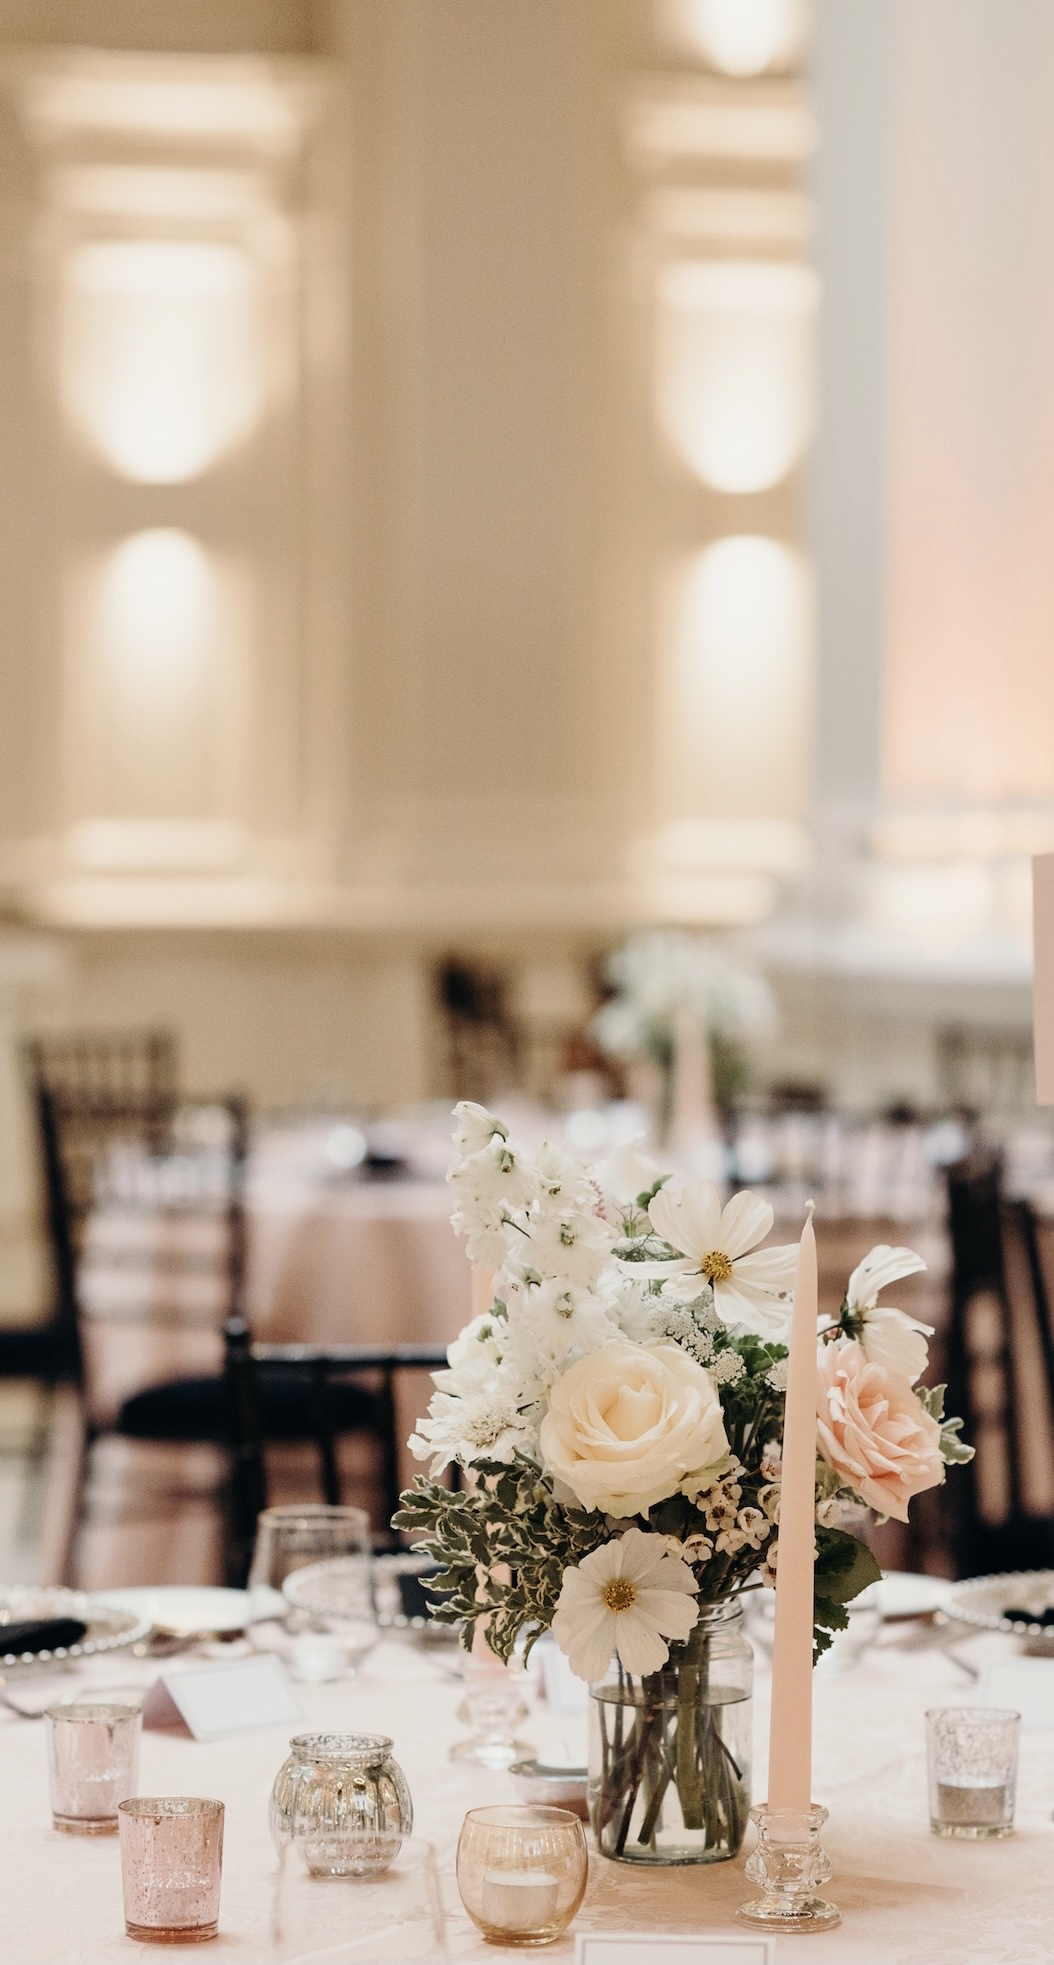 Delicate and romantic wedding flowers